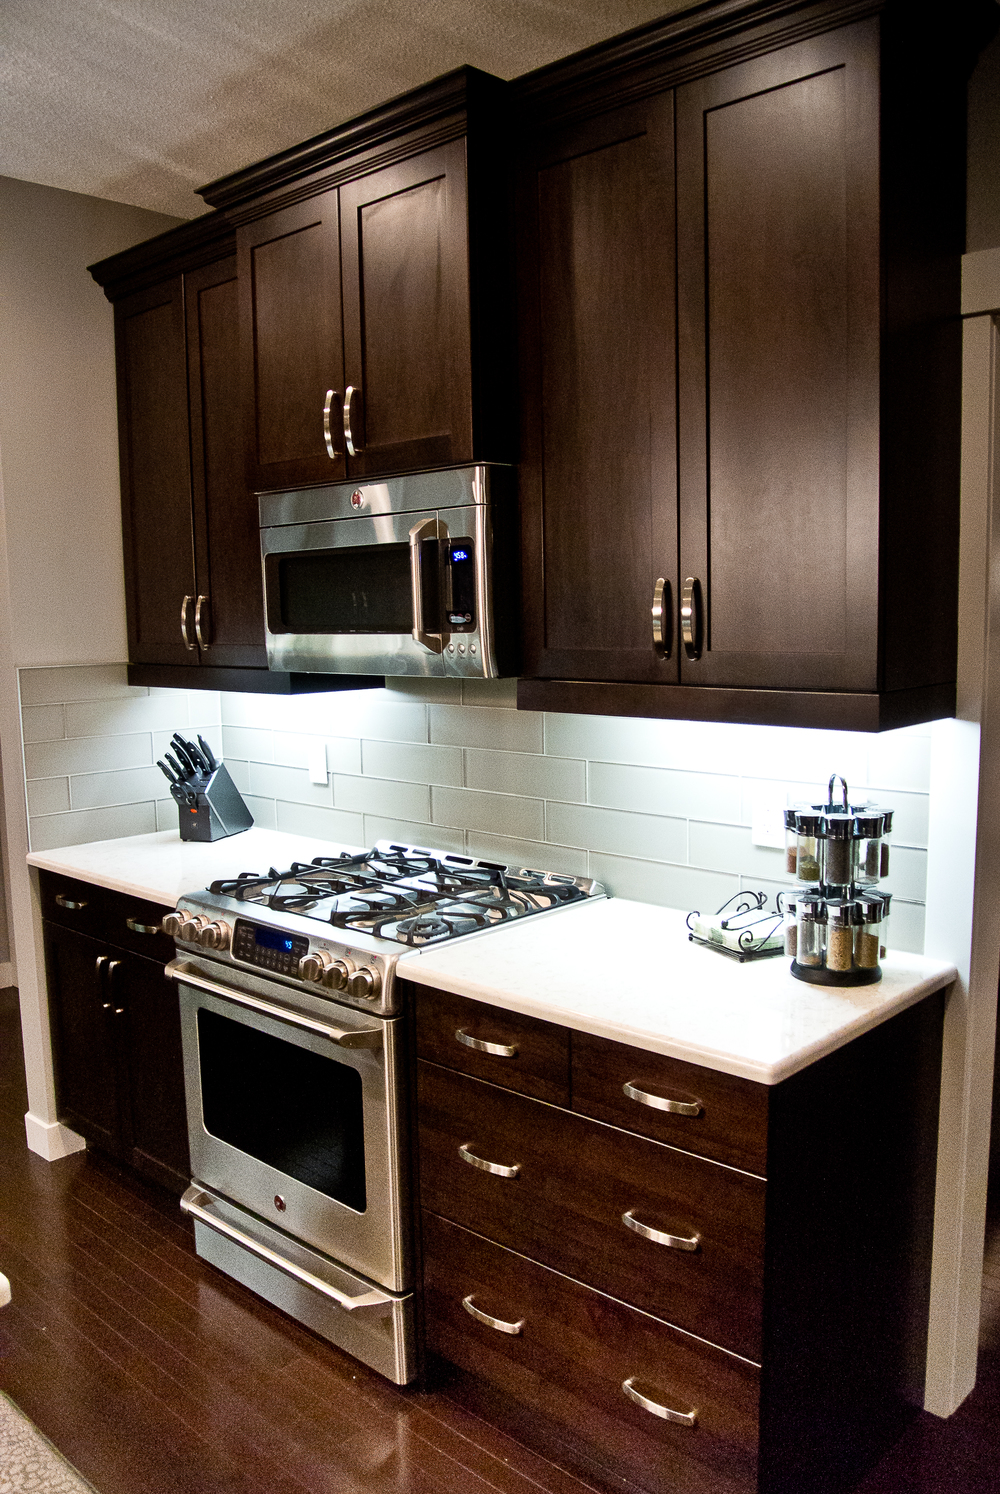 kitchen julie roberts interior design consultant this modern kitchen has all the makings of a chef s kitchen large quartz countertops 6 burner gas stove with warming drawer large raised island bar